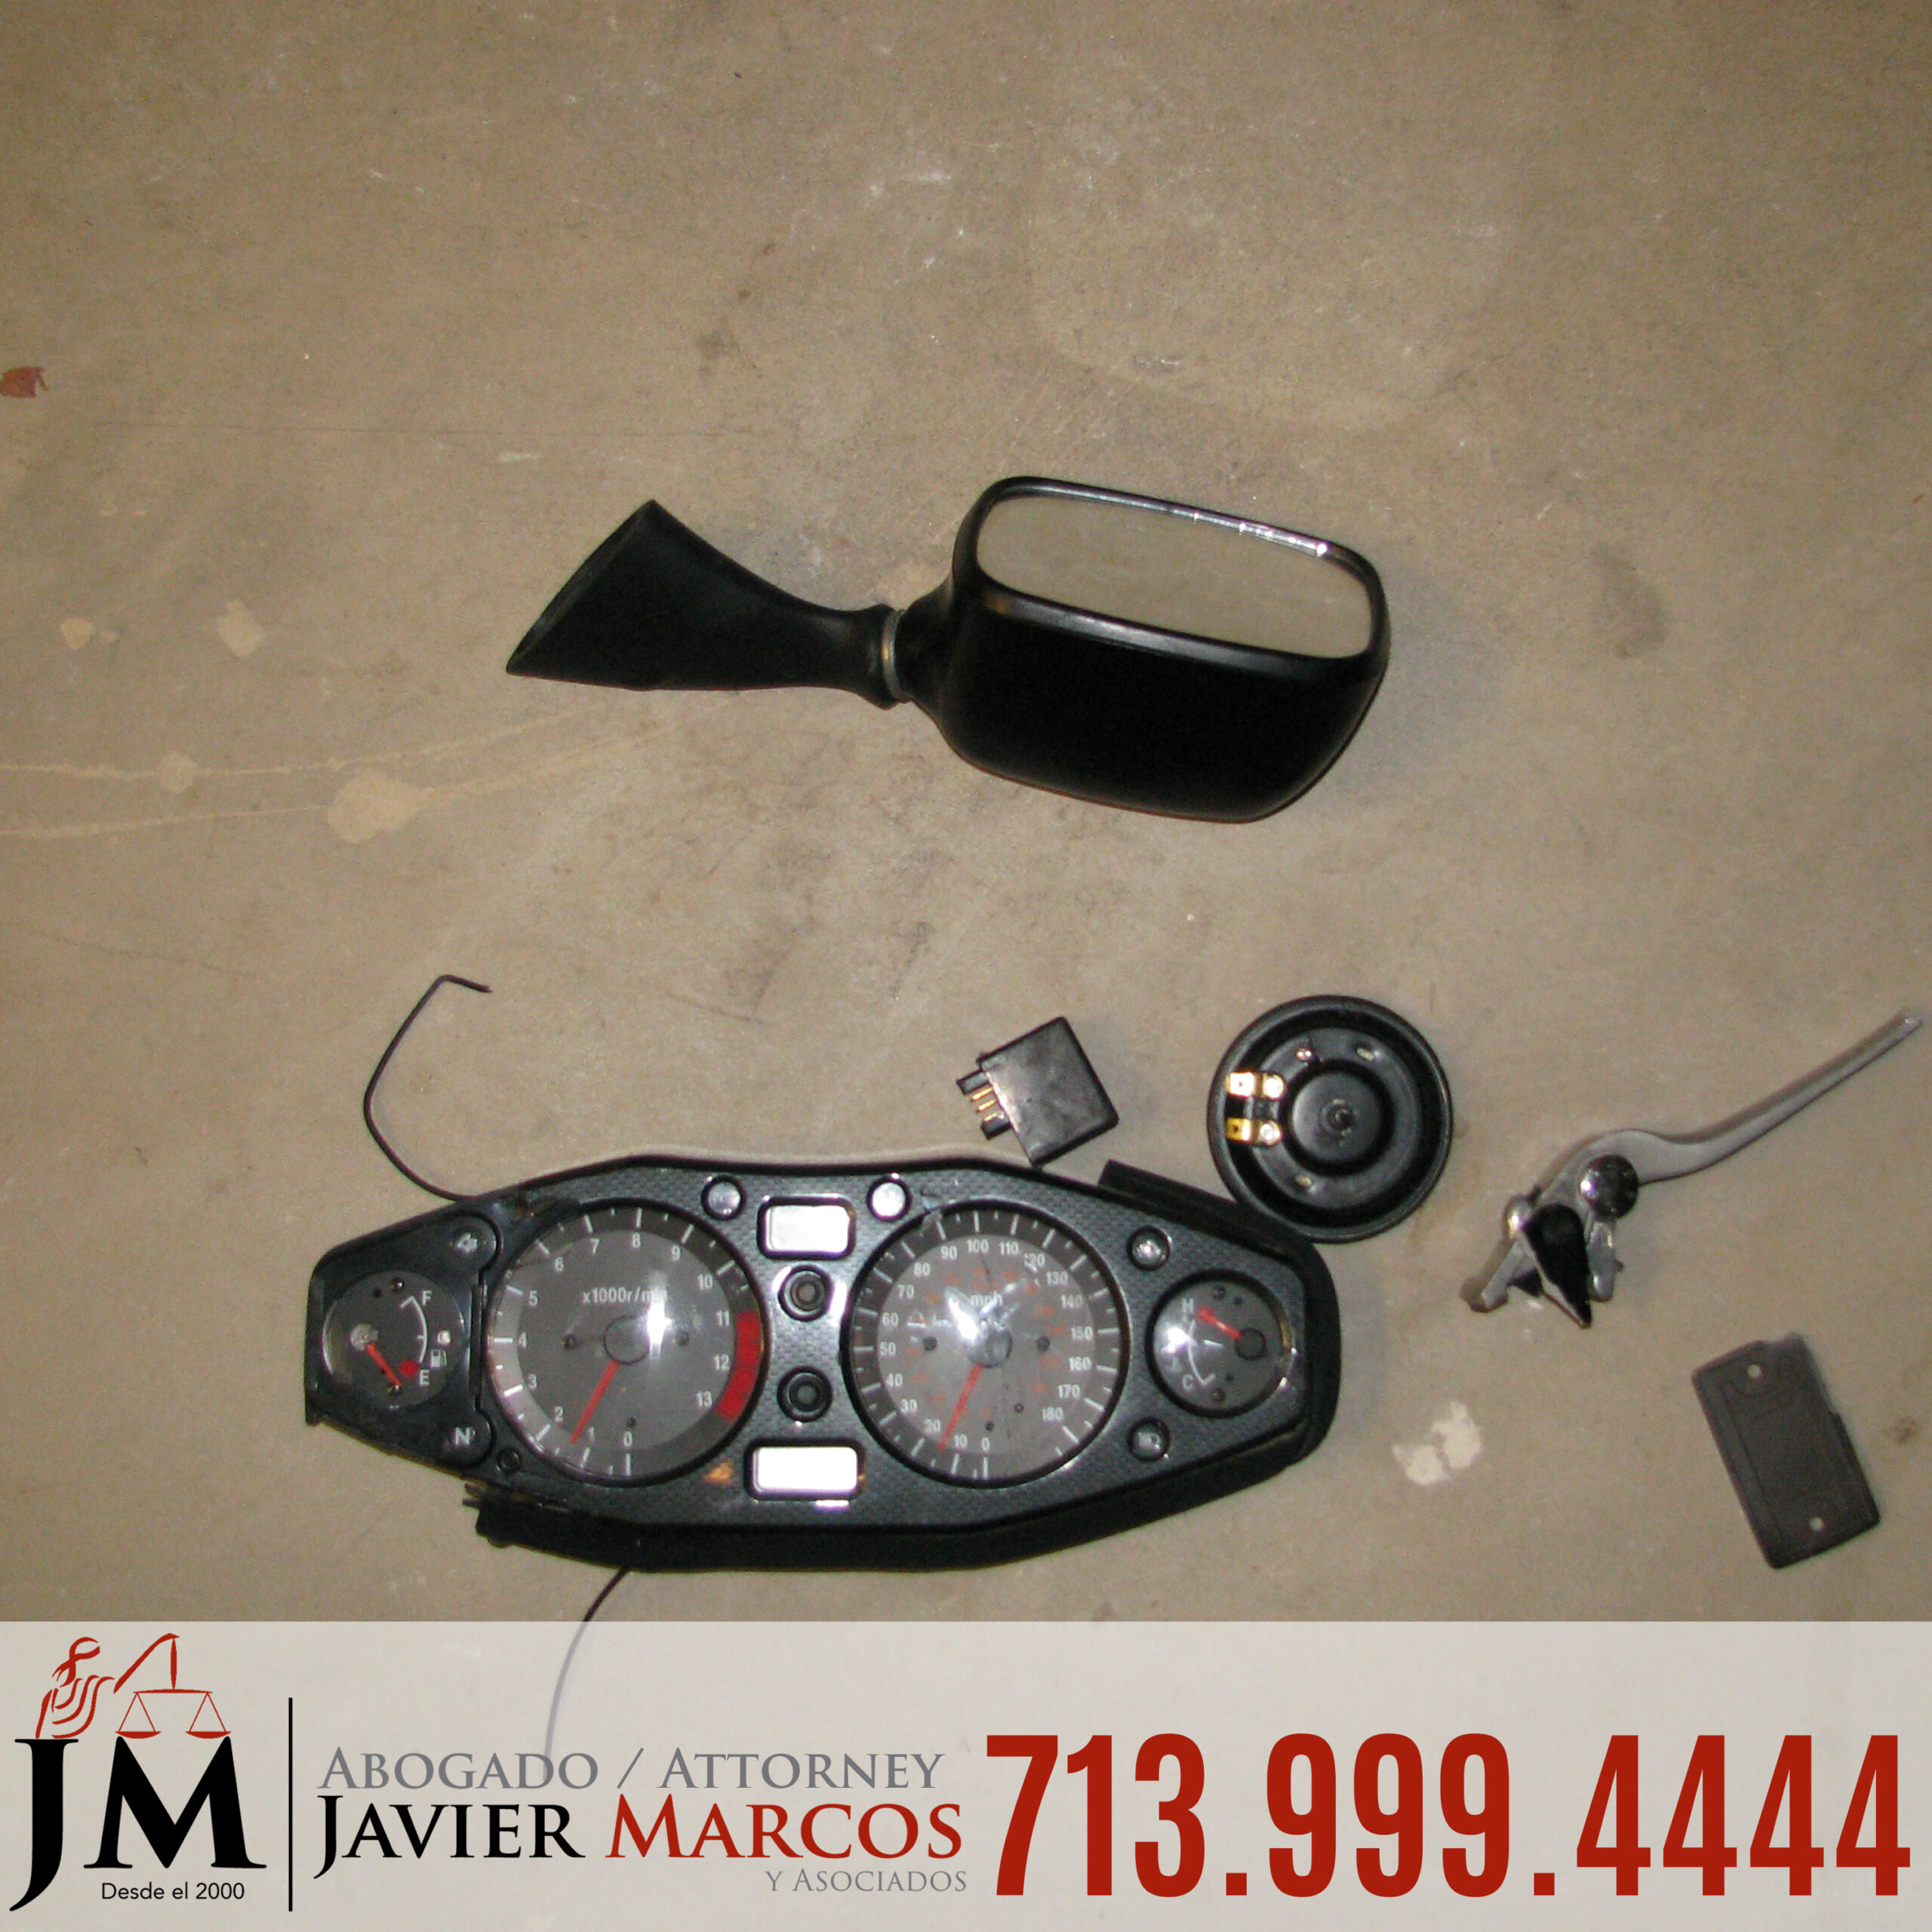 Riding a Motorcycle | Attorney Javier Marcos | 713.999.4444